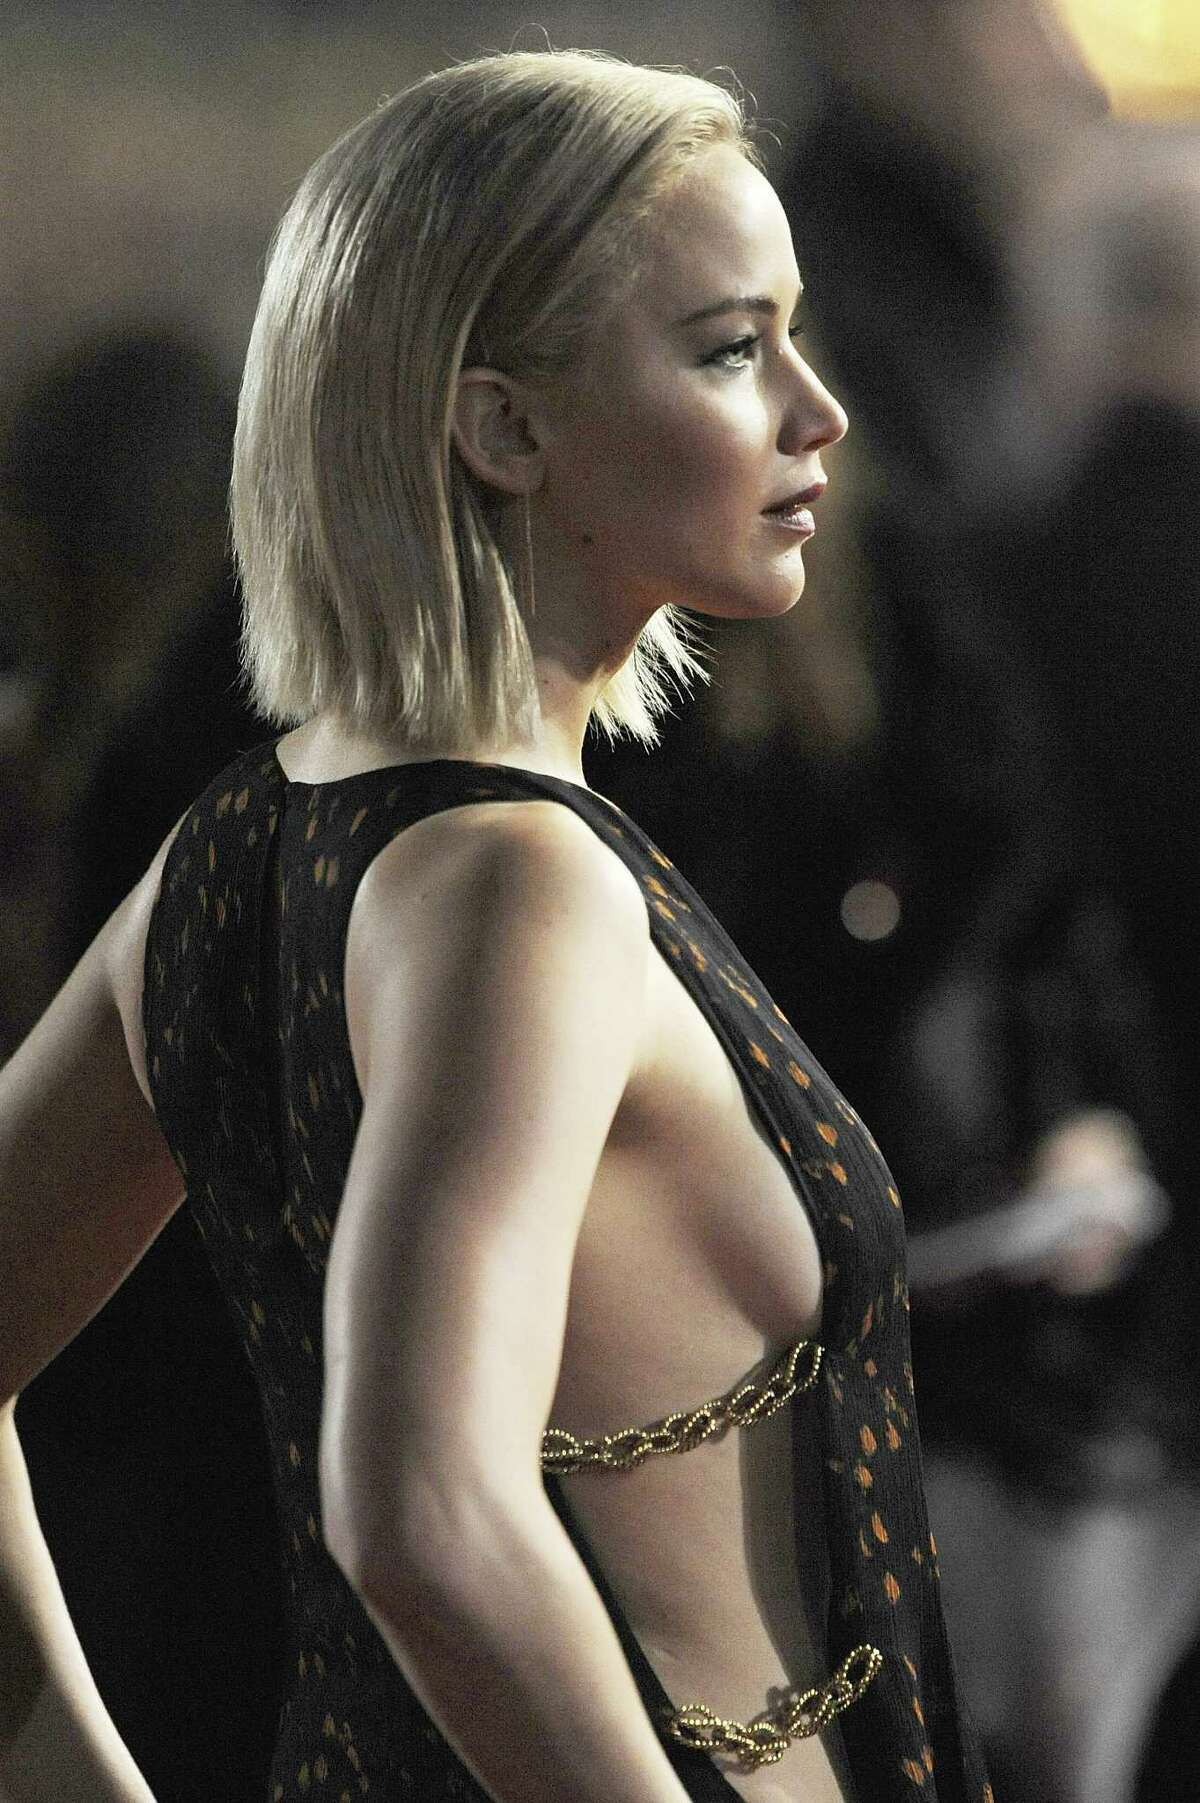 Jennifer Lawrence attends The Hunger Games: Mockingjay Part 2 - UK Premiere at Odeon Leicester Square on November 5, 2015 in London, England.